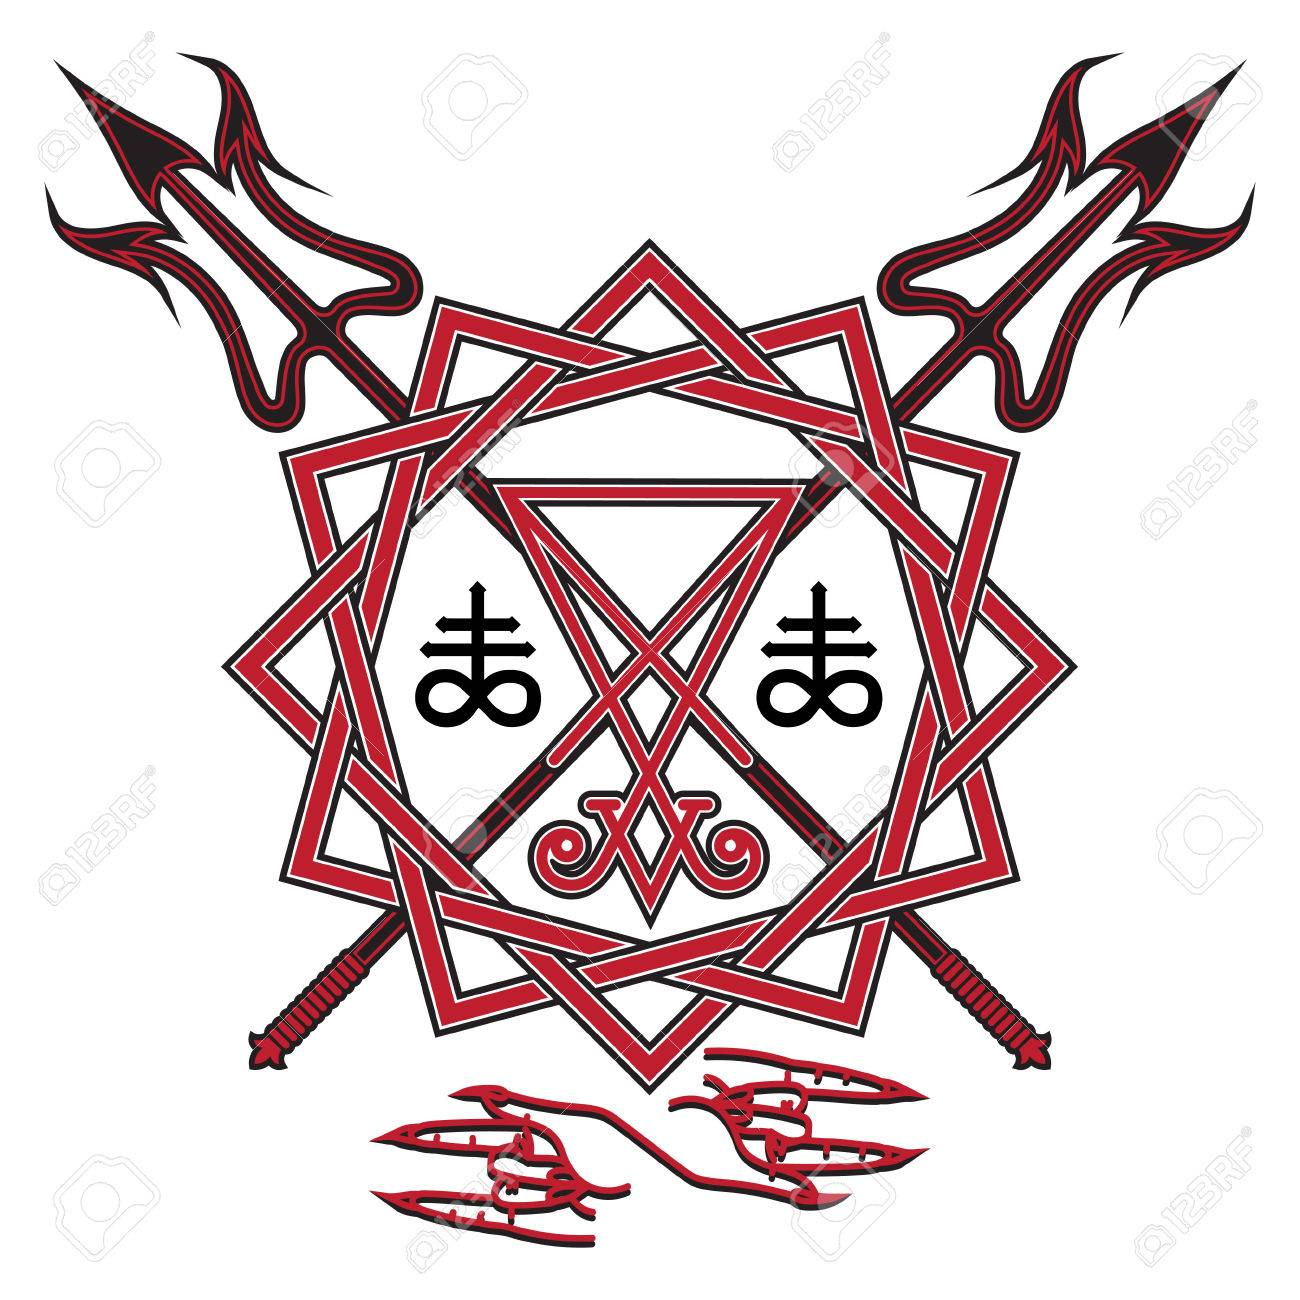 Pentagram witch images stock pictures royalty free pentagram sign of lucifer the pentagram and crossed devils pitchfork isolated on whie vector biocorpaavc